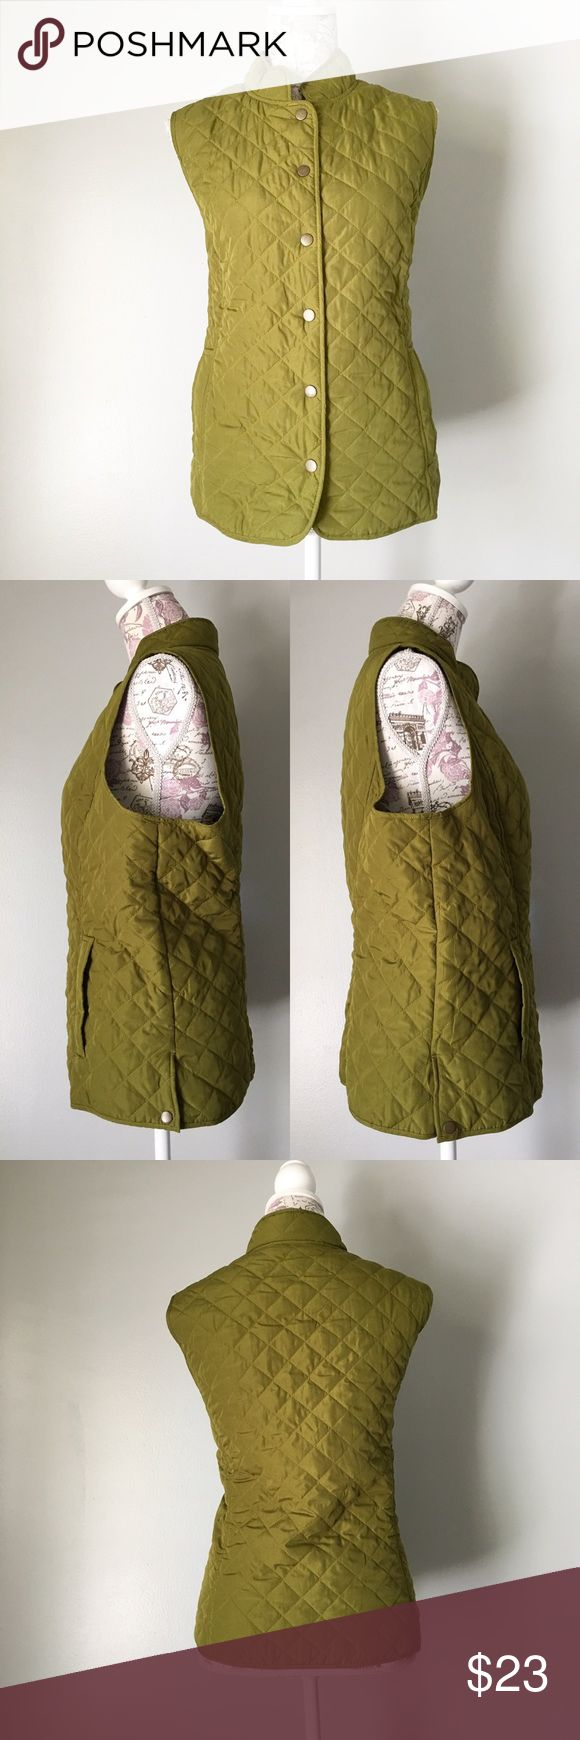 25 Best Ideas About Army Green Vest On Pinterest